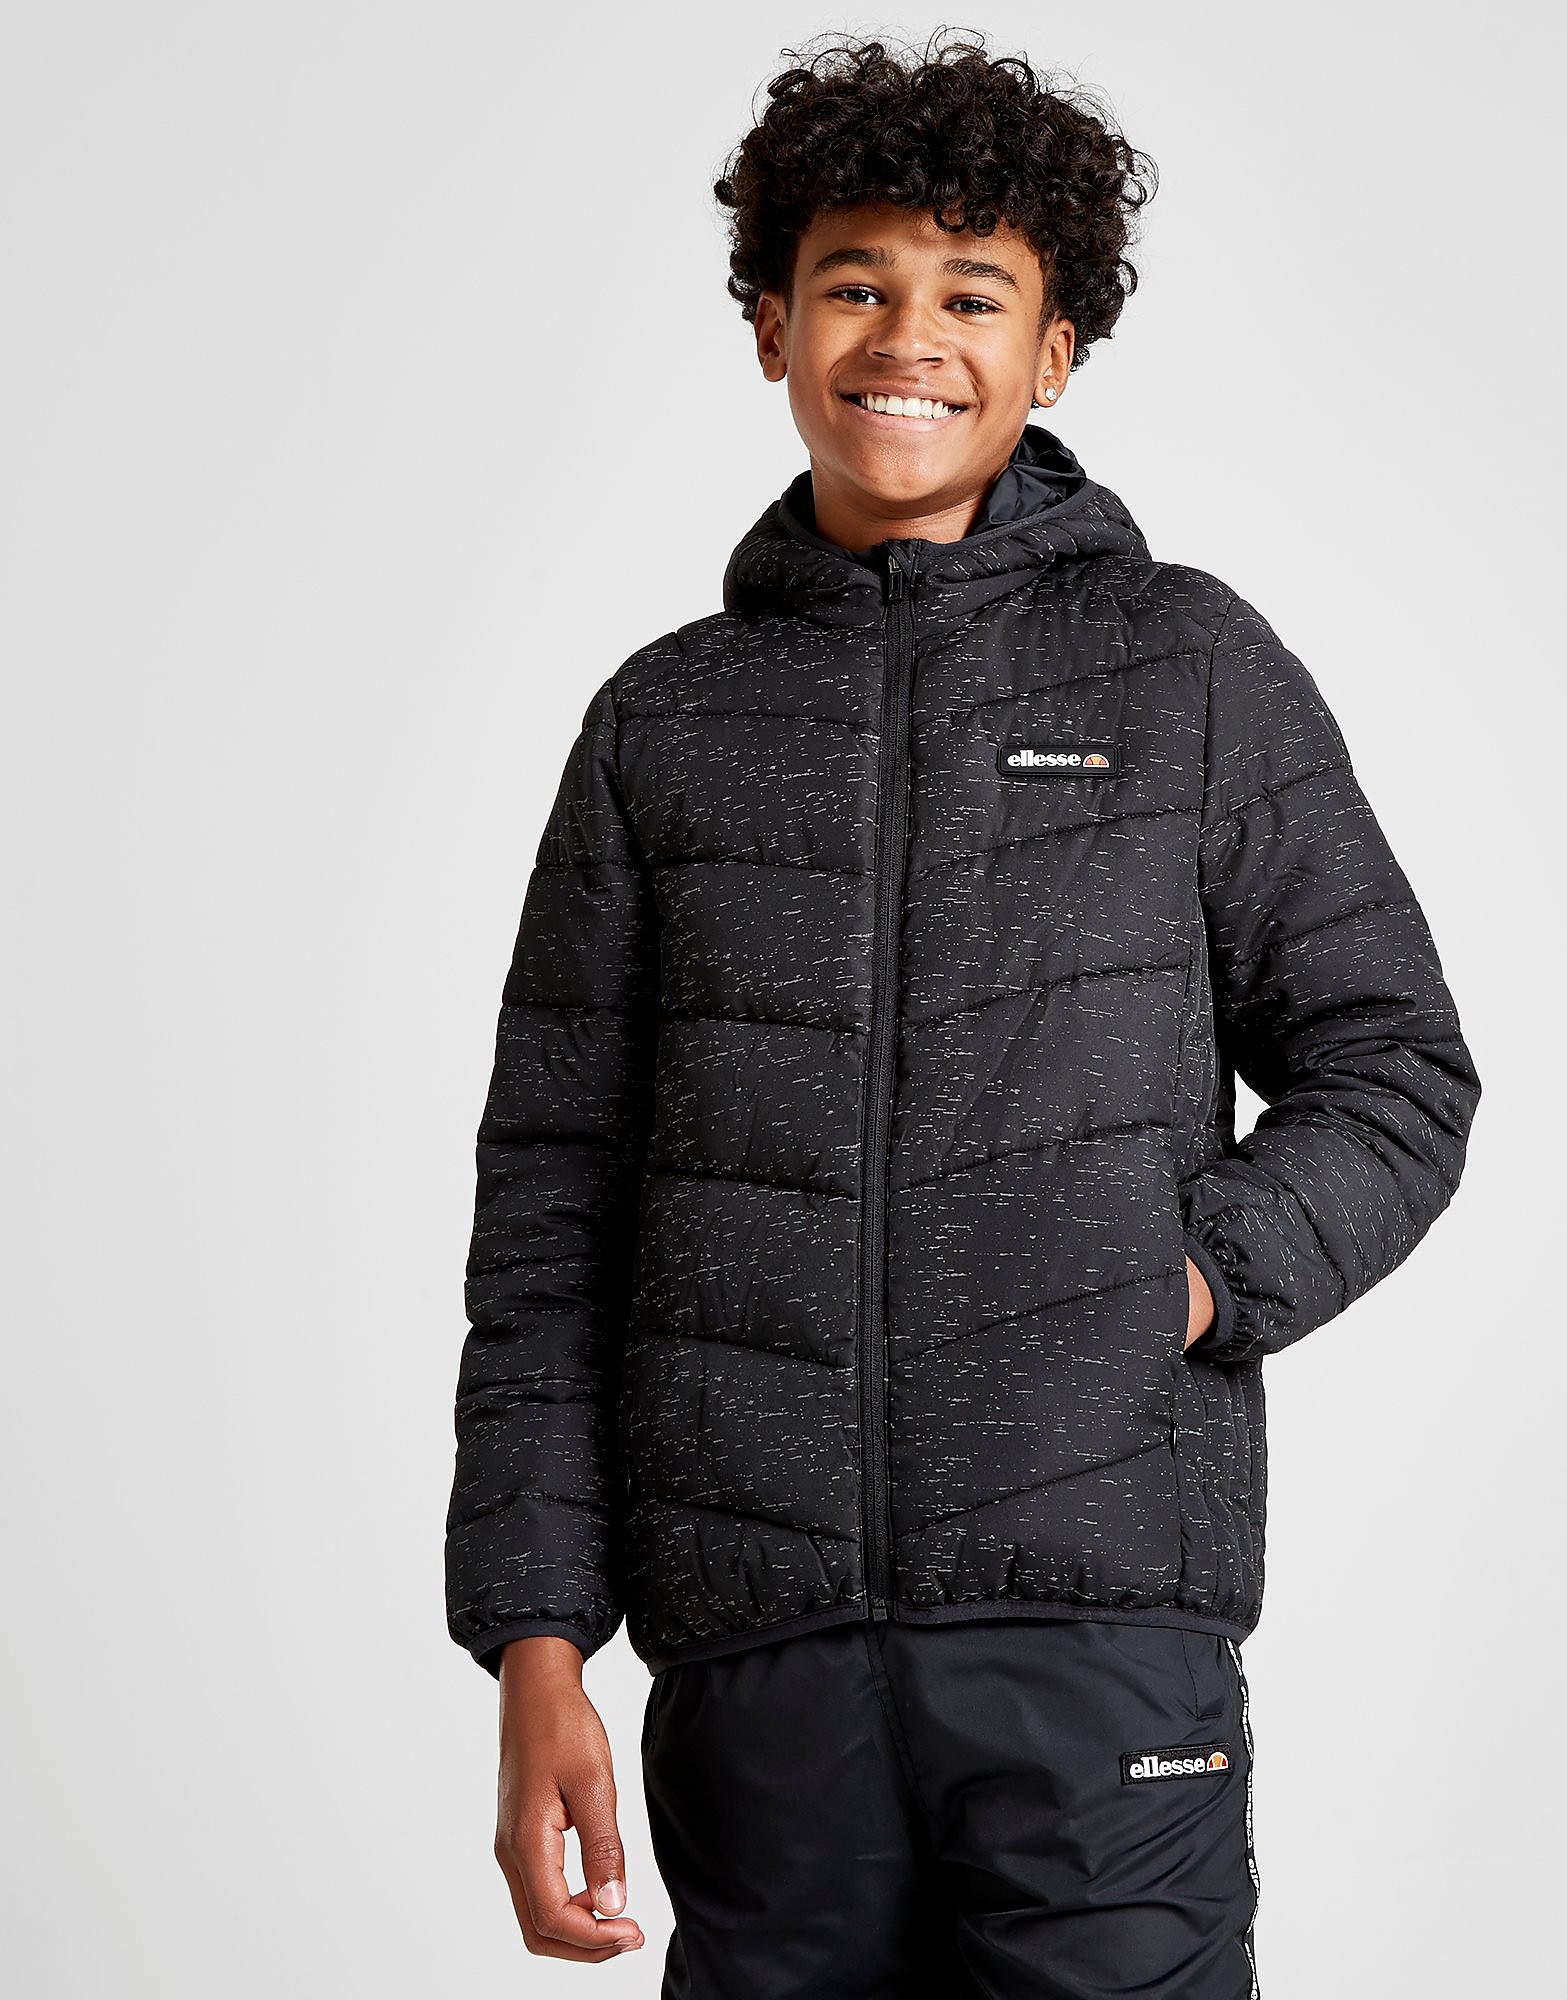 Ellesse Osvaldo Speckle Jacket Junior - Zwart - Kind